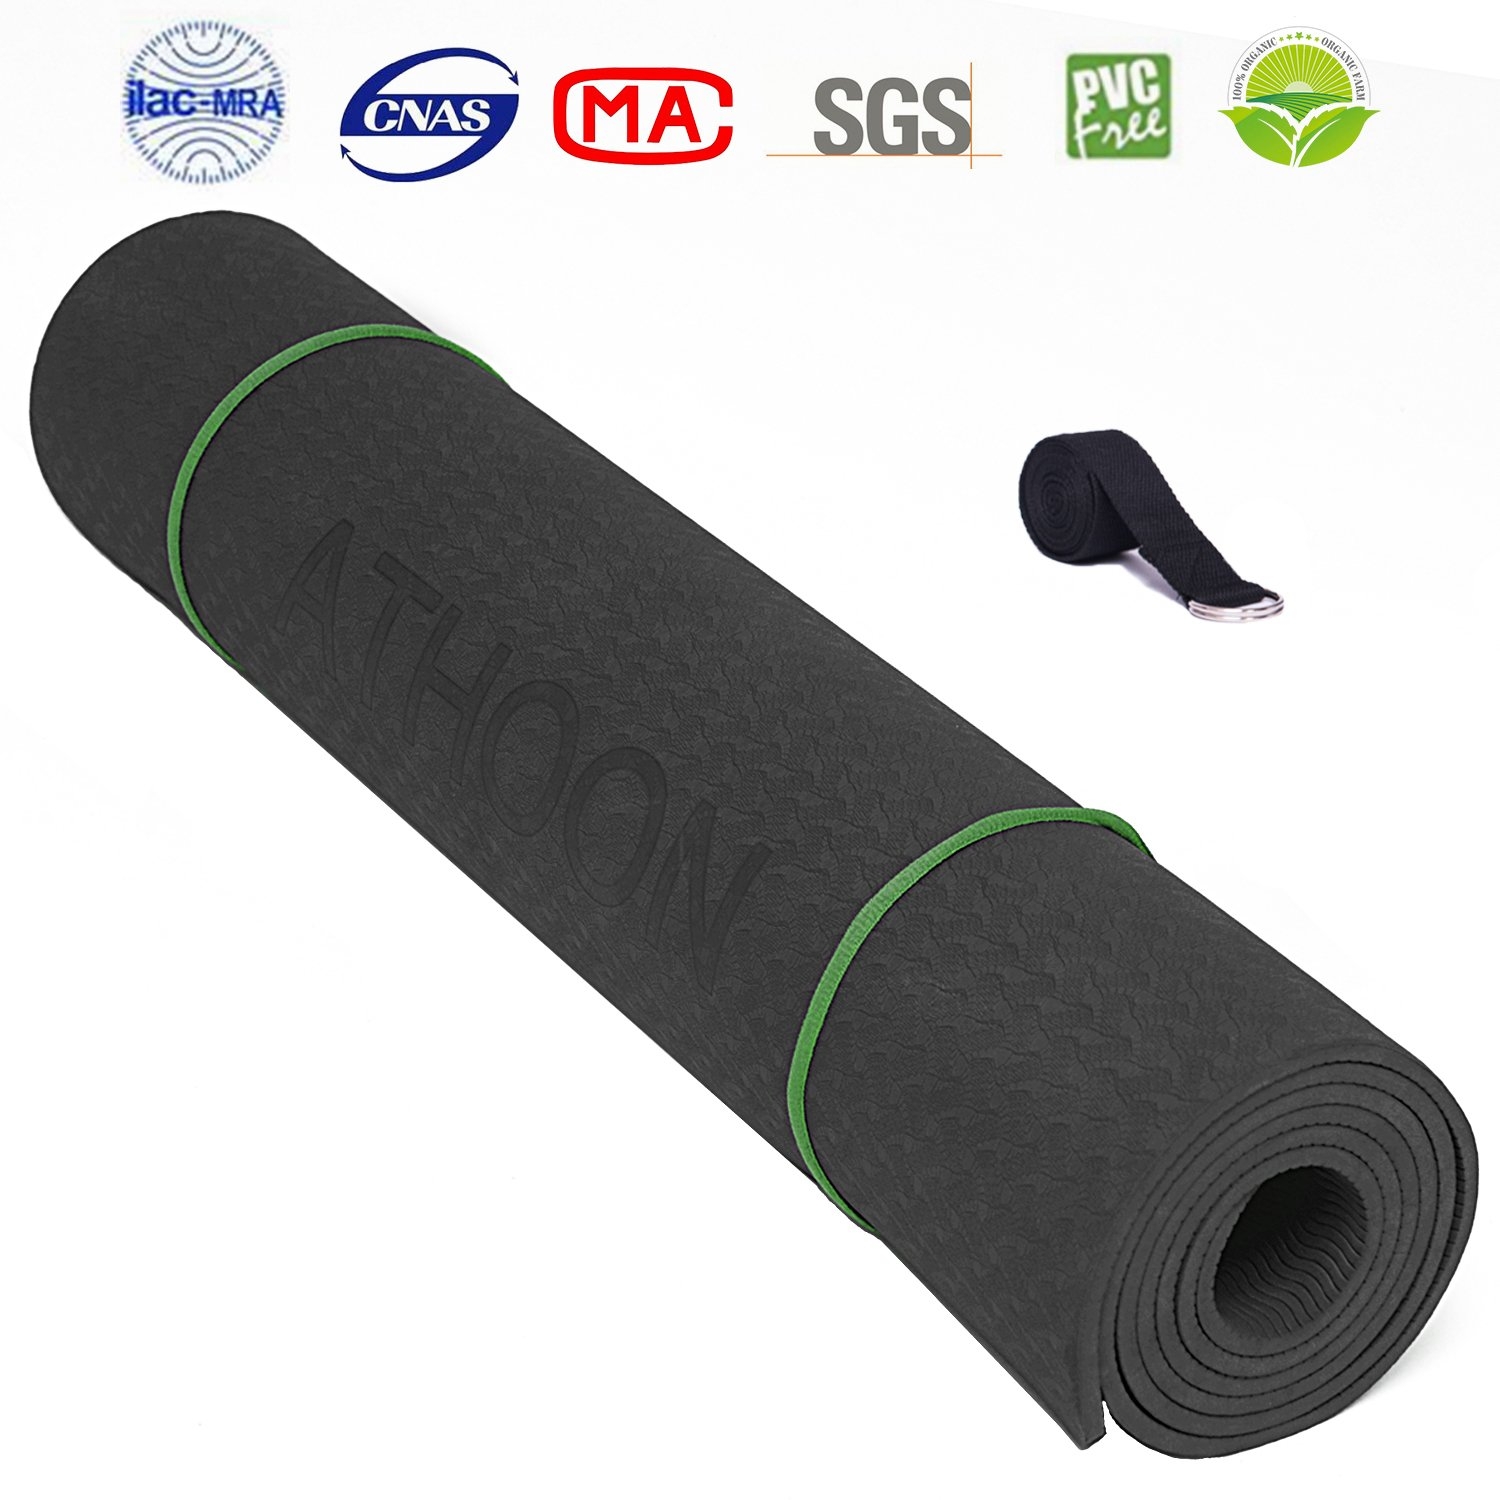 Abdominal Exercisers Fitness Equipment & Gear Incline 0.5 Inch Thick Exercise Mat Gym Yoga 24inch Wide 70inch Long $70 Msrp Harmonious Colors